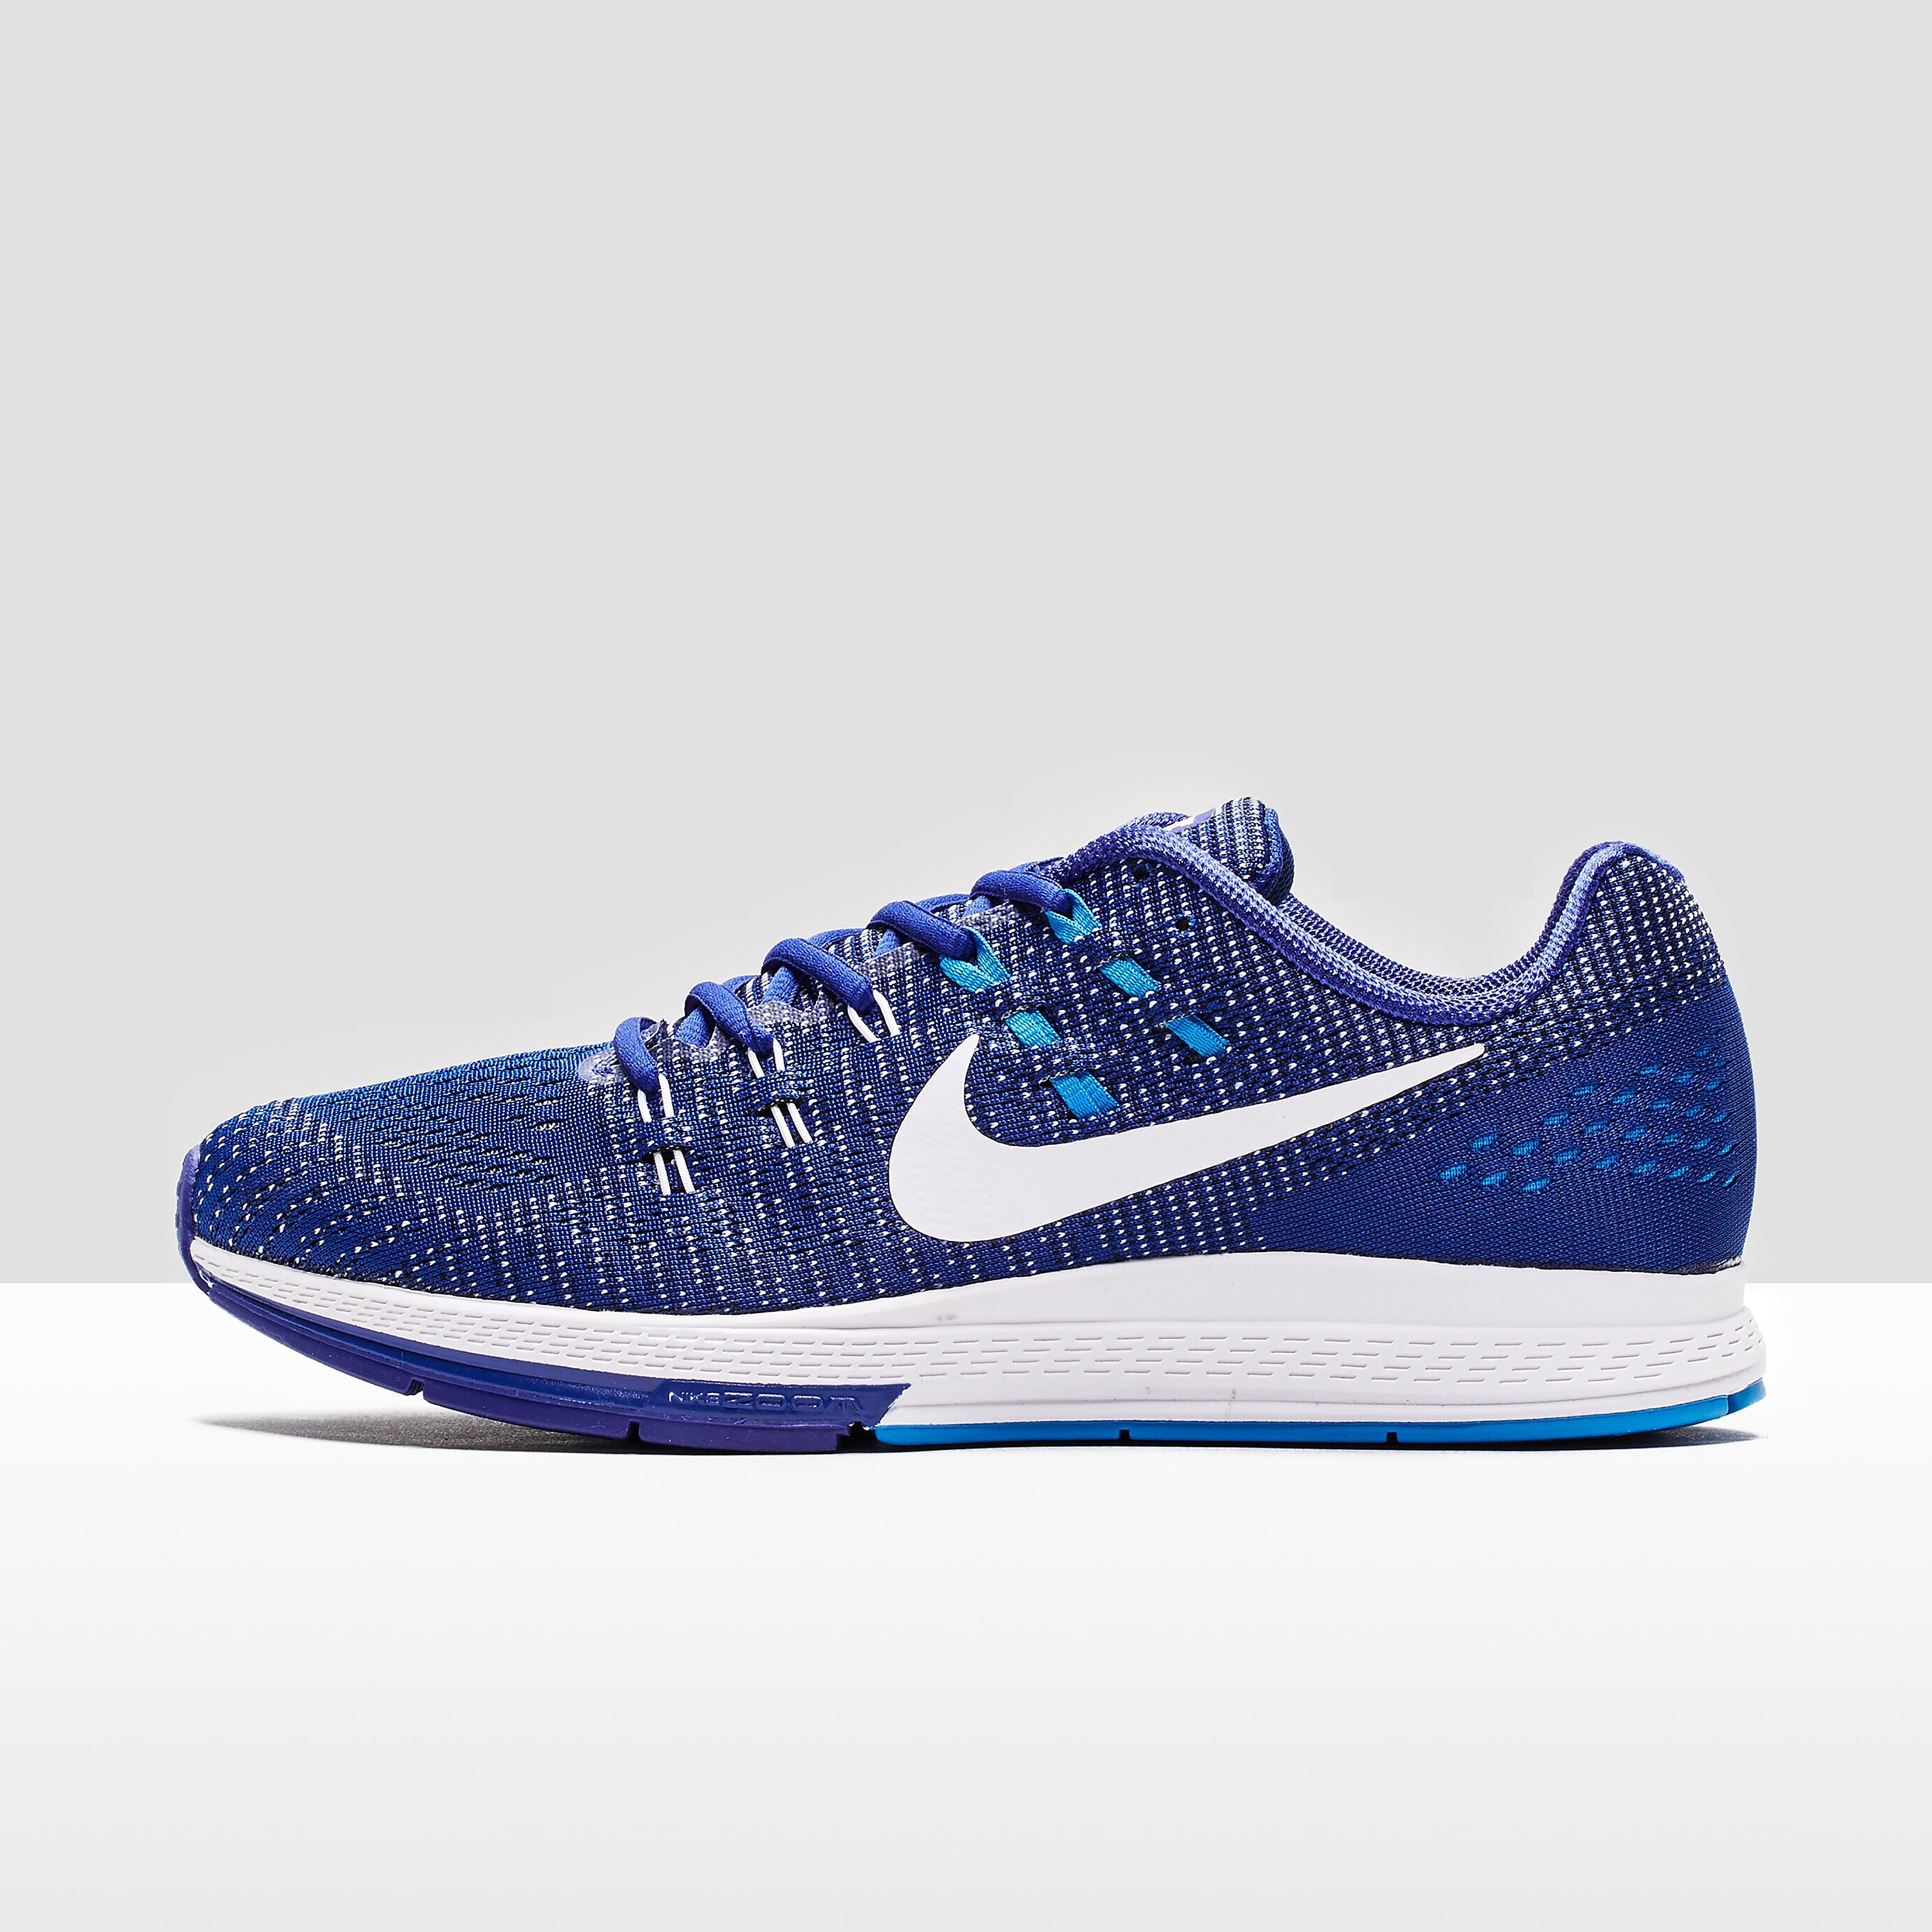 Nike Air Zoom Structure 19 Men's Running Shoe